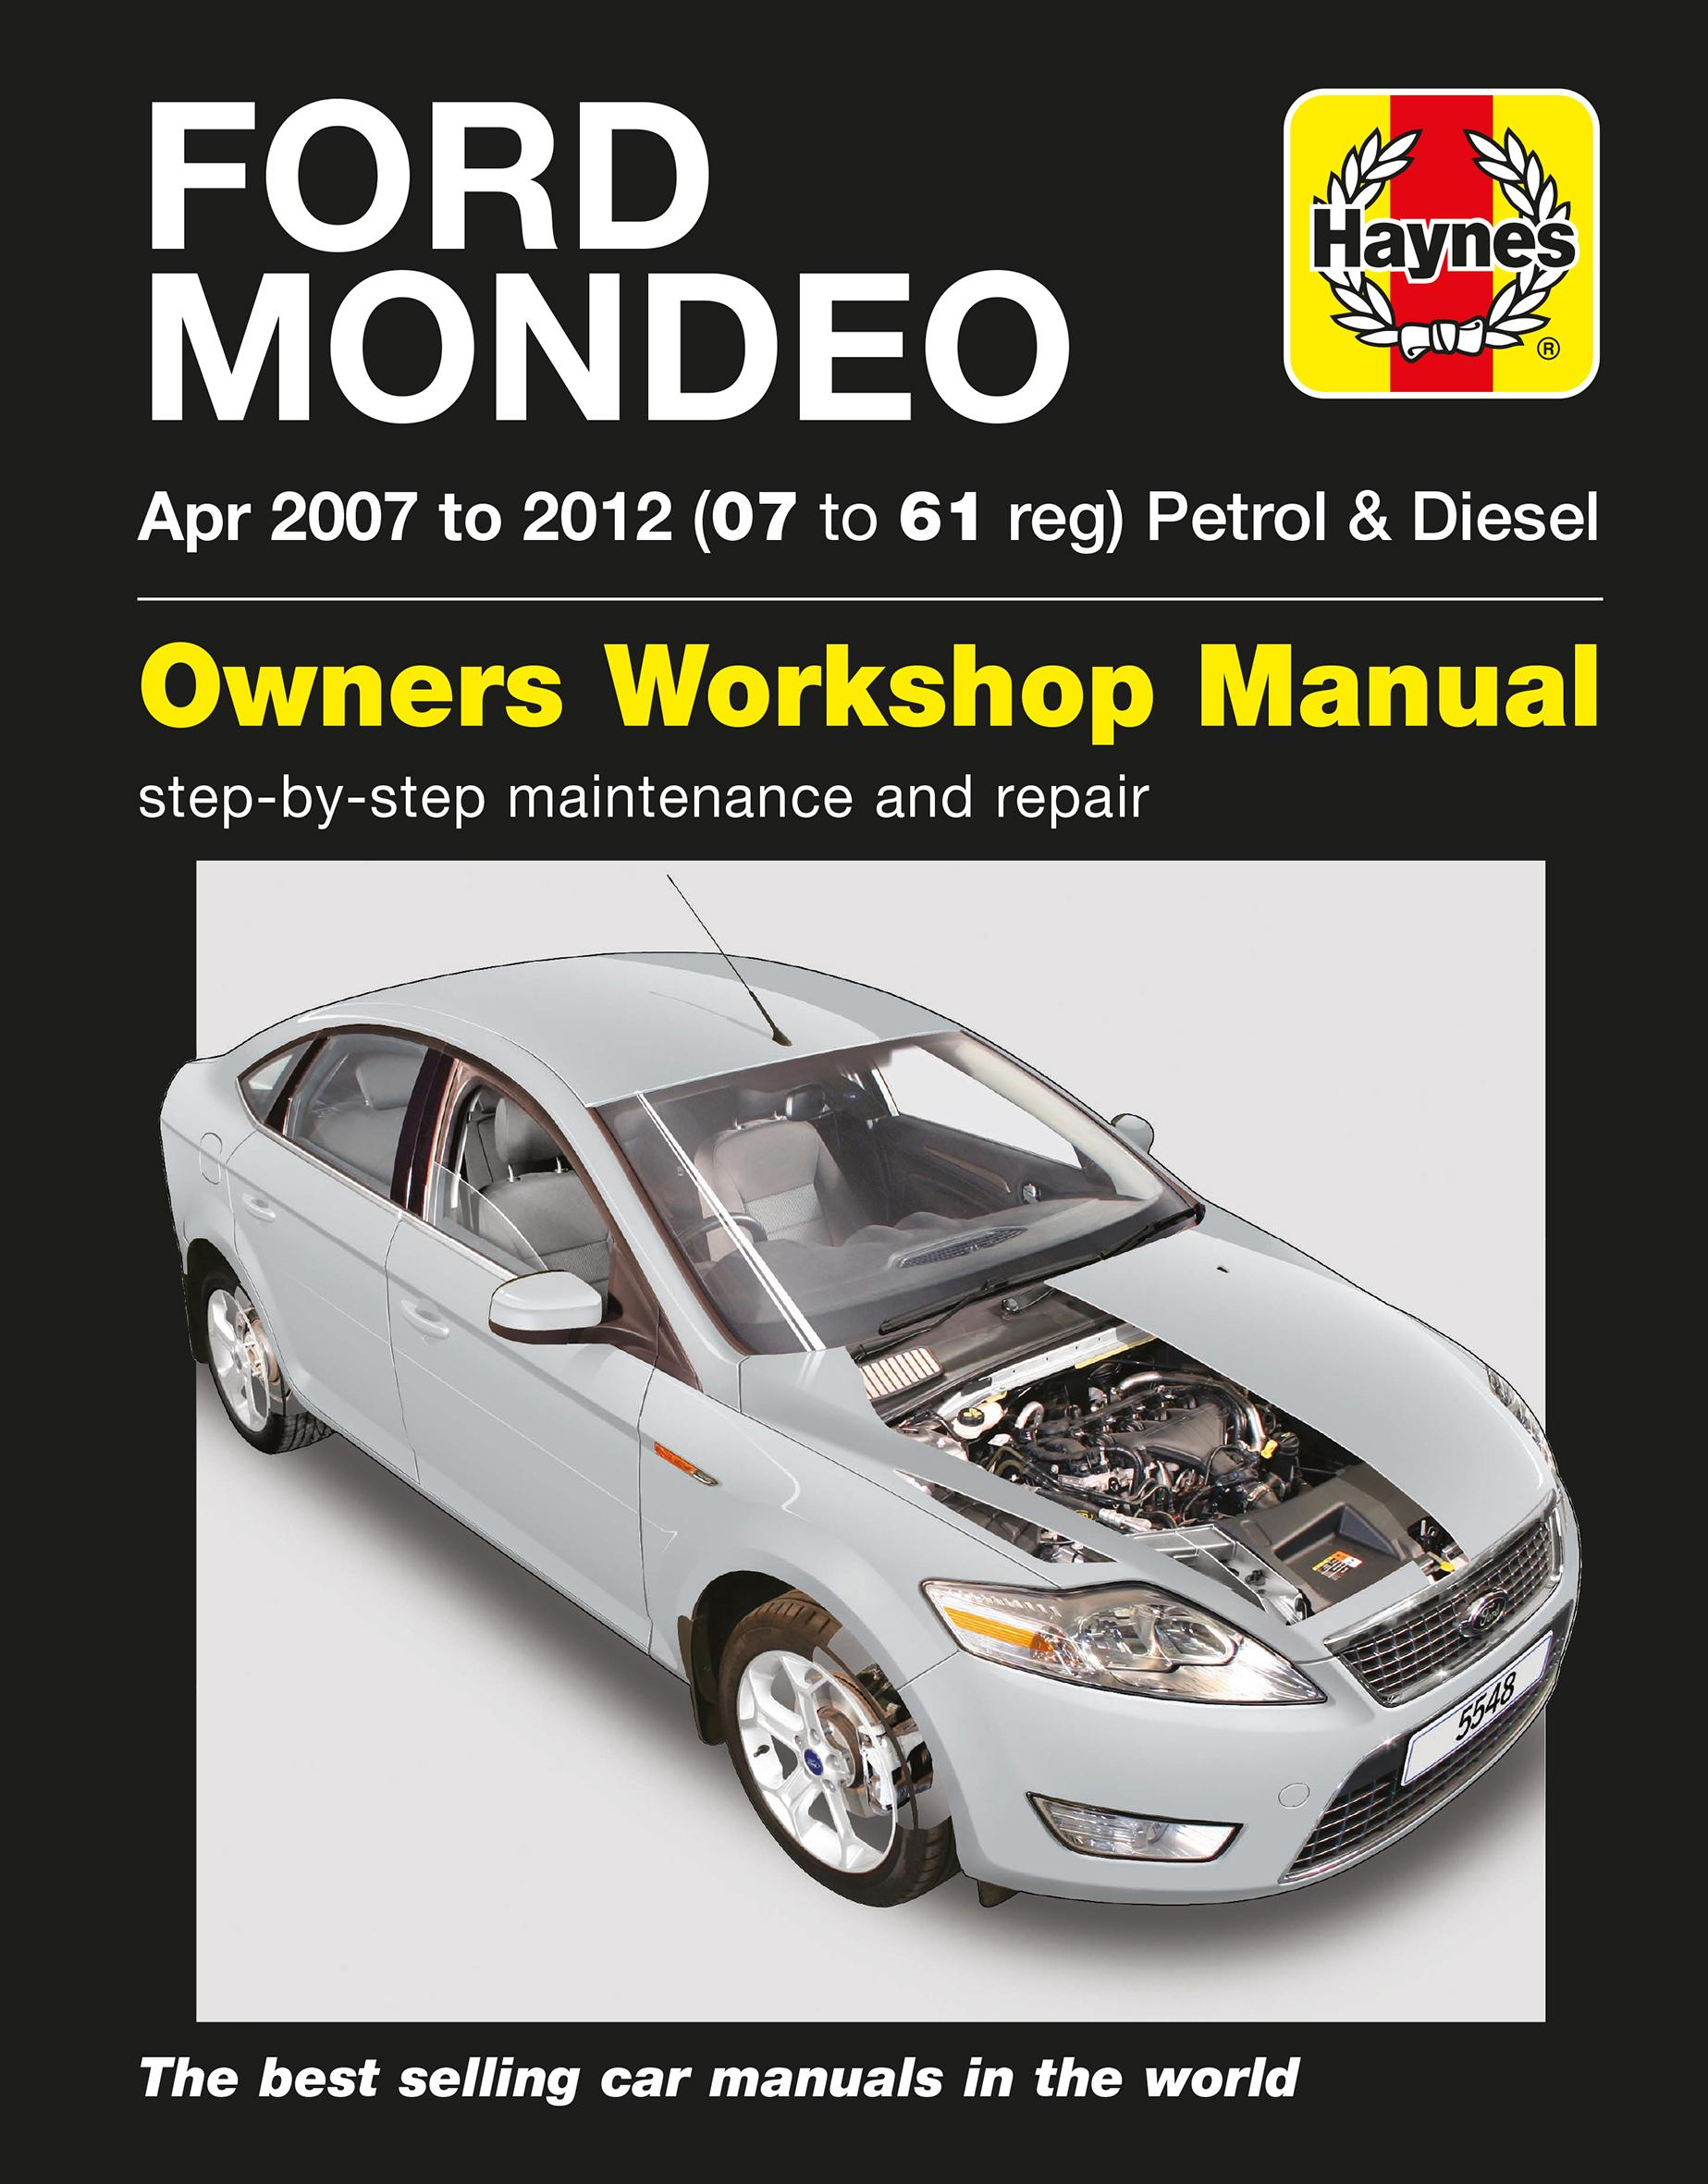 haynes ford mondeo petrol and diese rh halfords com ford fiesta 1.4 tdci service manual download ford mondeo 2.0 tdci workshop manual